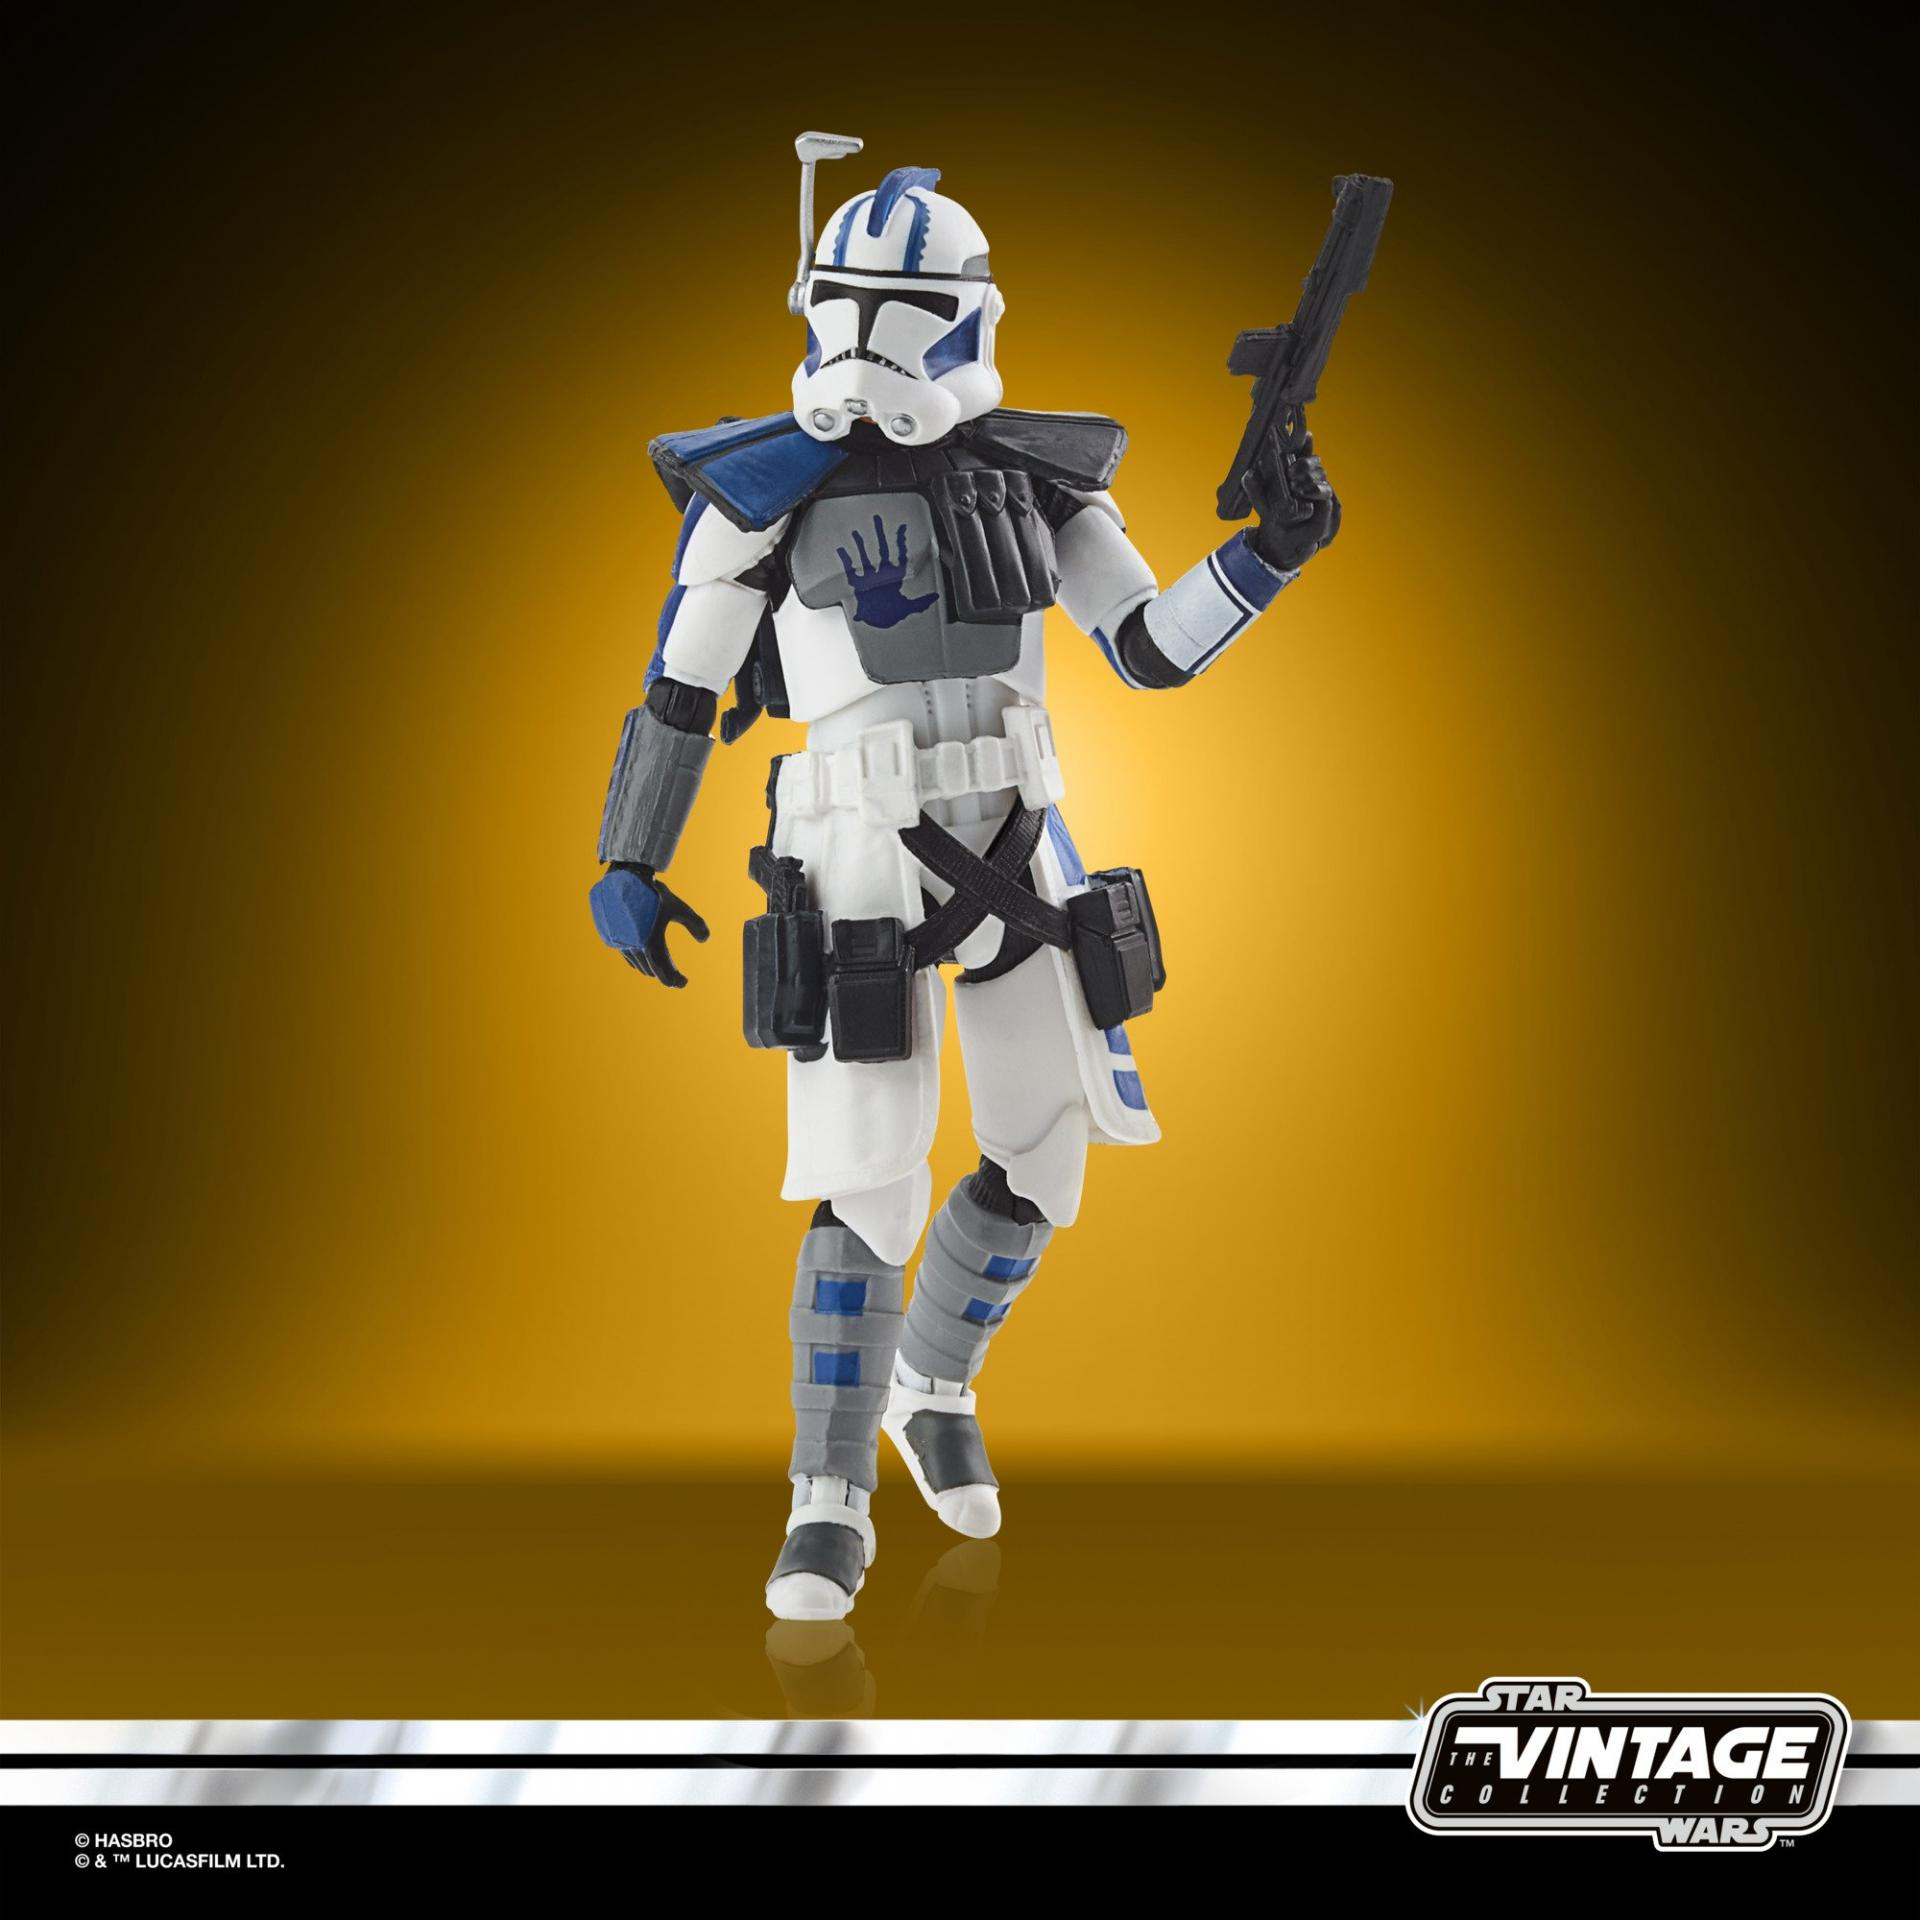 Star wars the vintage collection arc trooper echo5